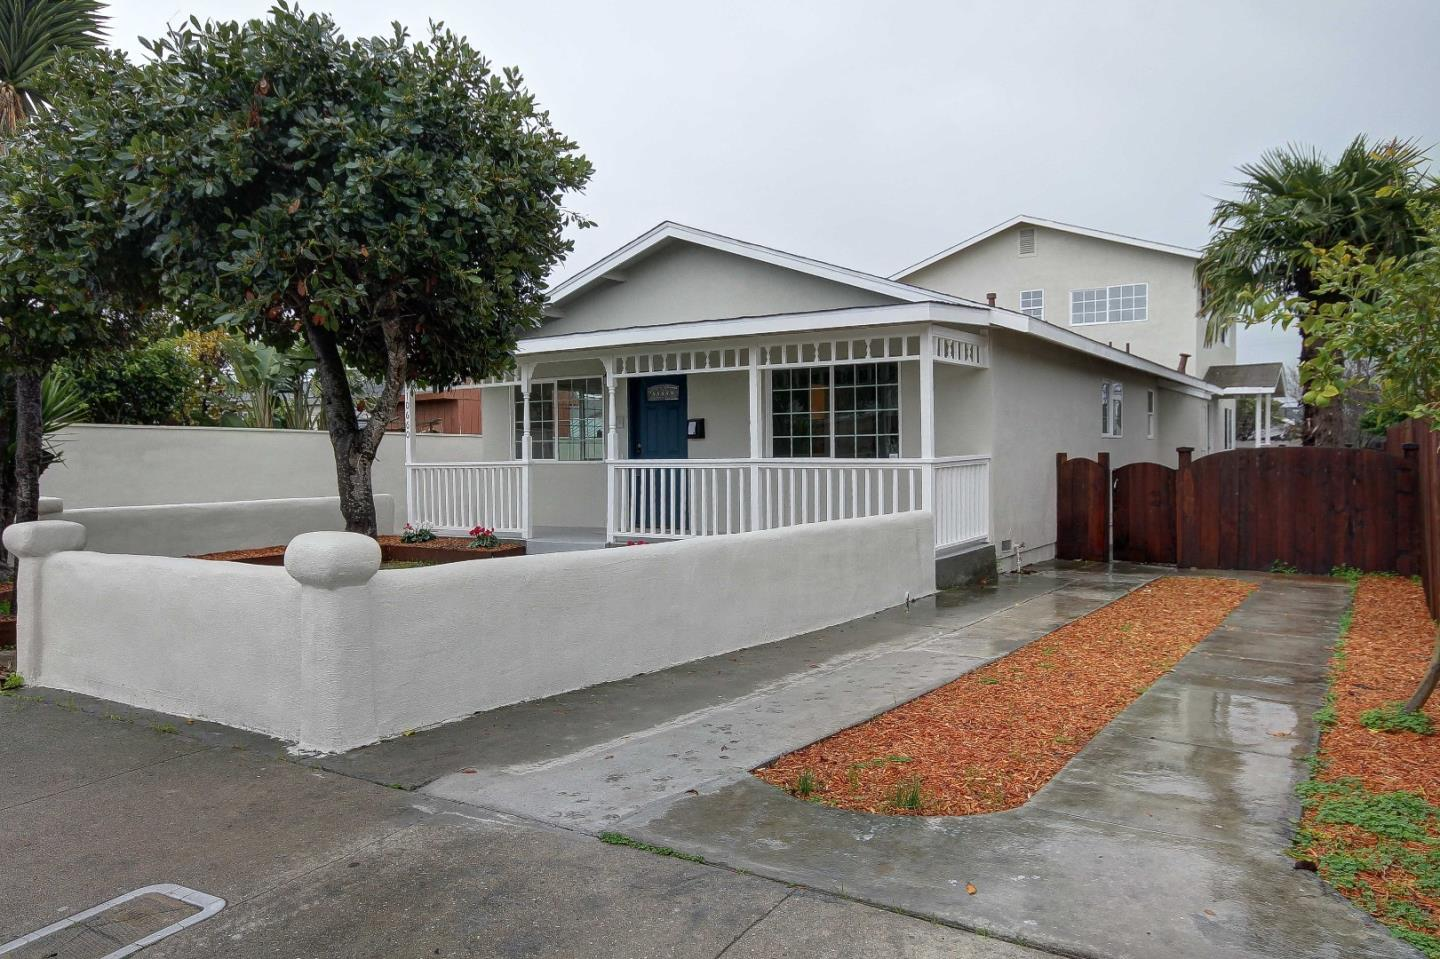 10660 Haight St, Castroville, CA 95012